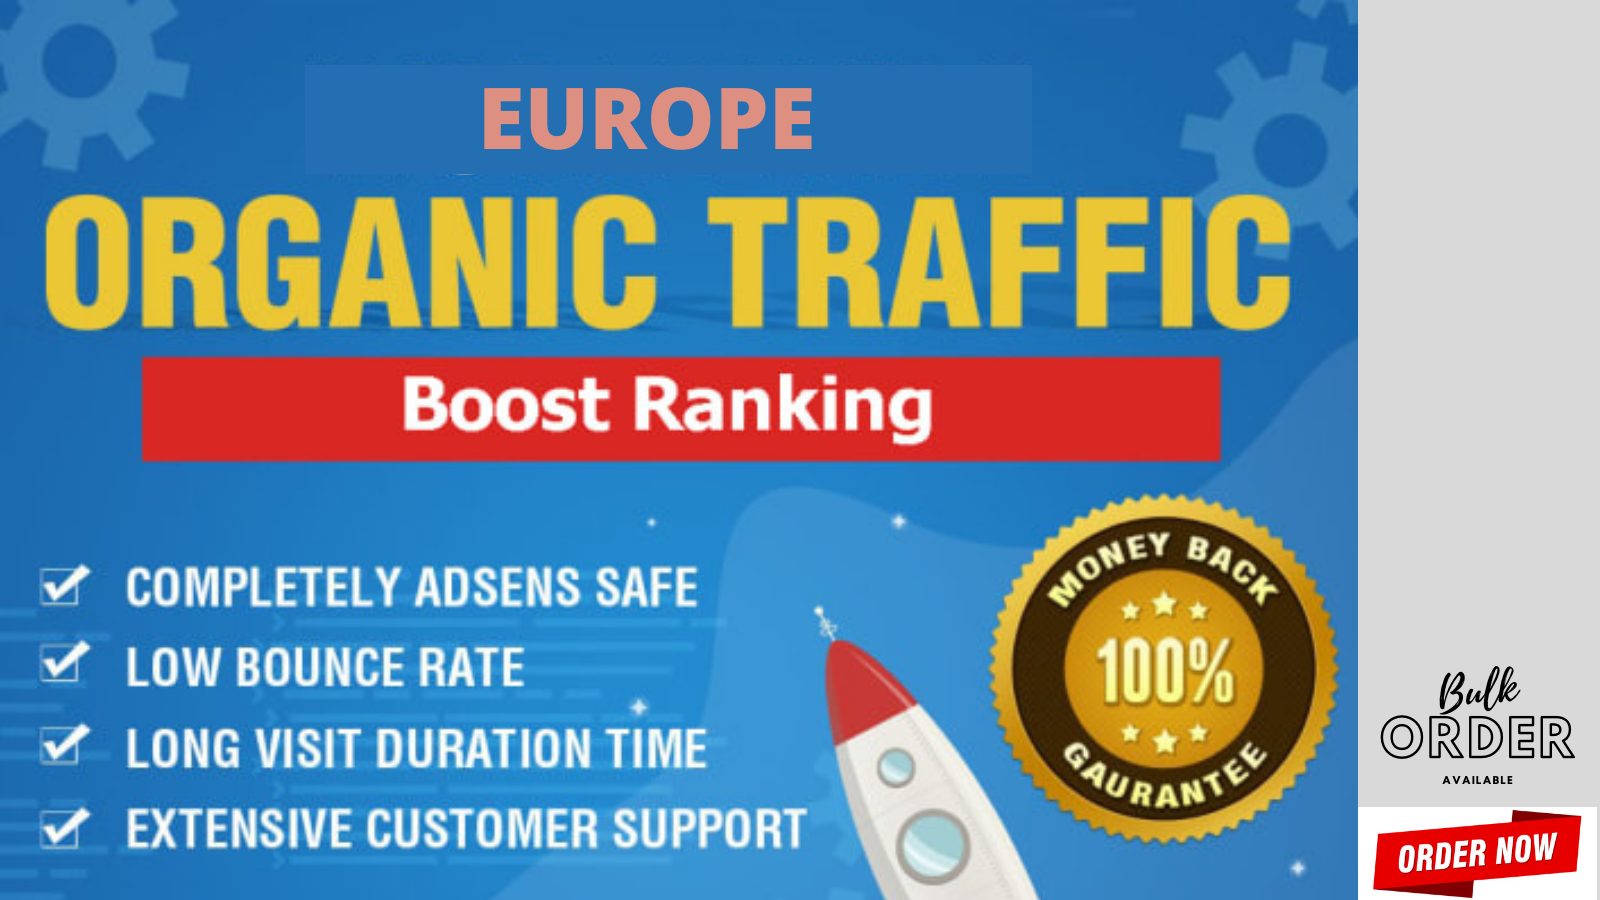 Europe Website Visitors Now Order Today to Get Bonus as well